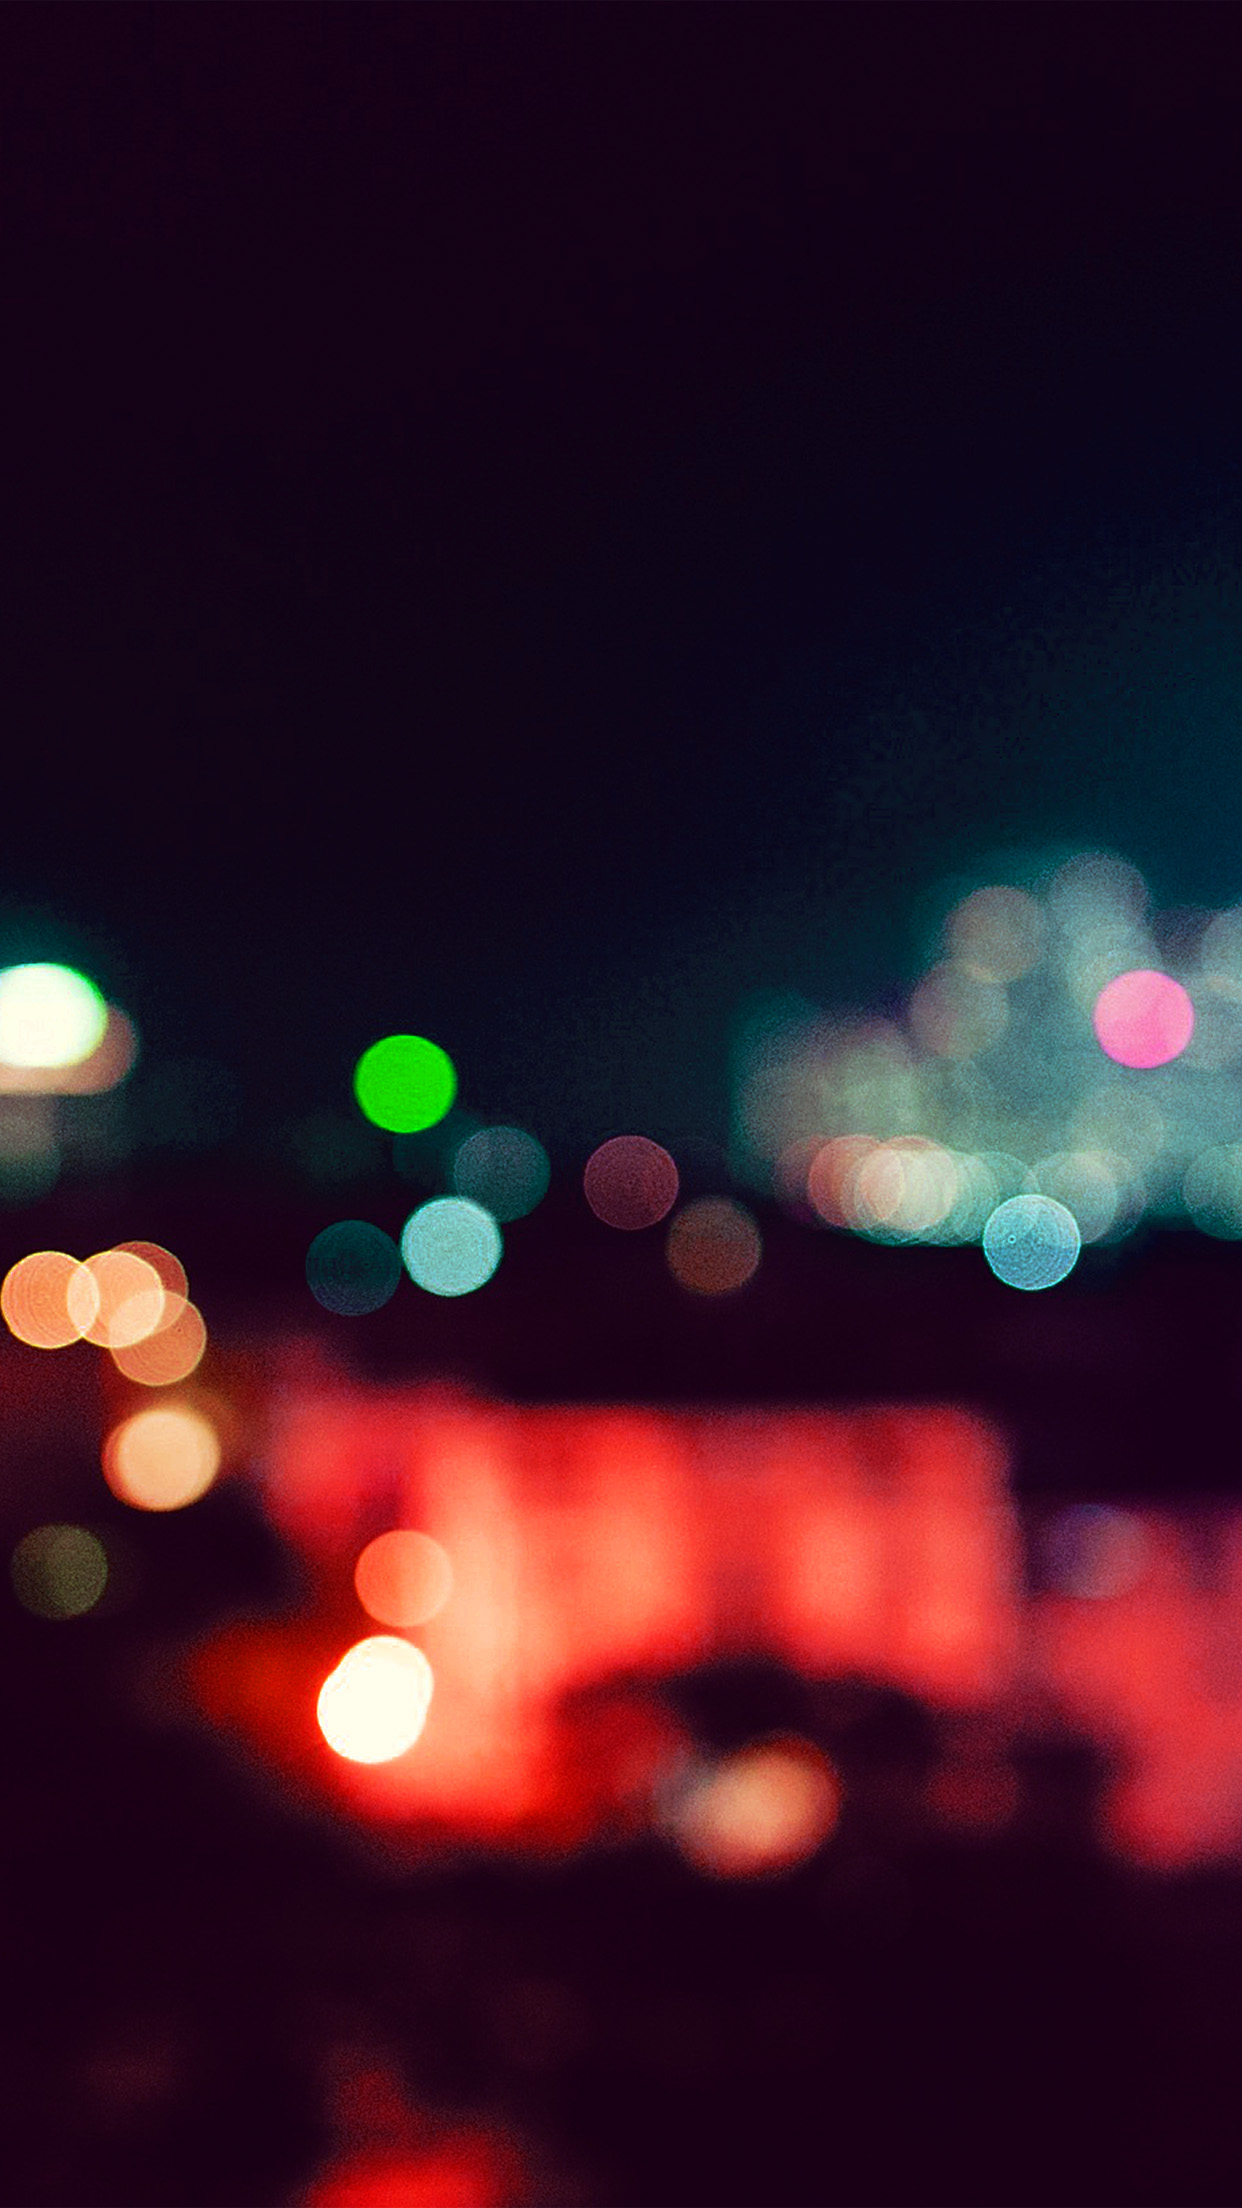 Papers Co Iphone Wallpaper Nf78 City Night Bokeh Blue Red Romantic Dark